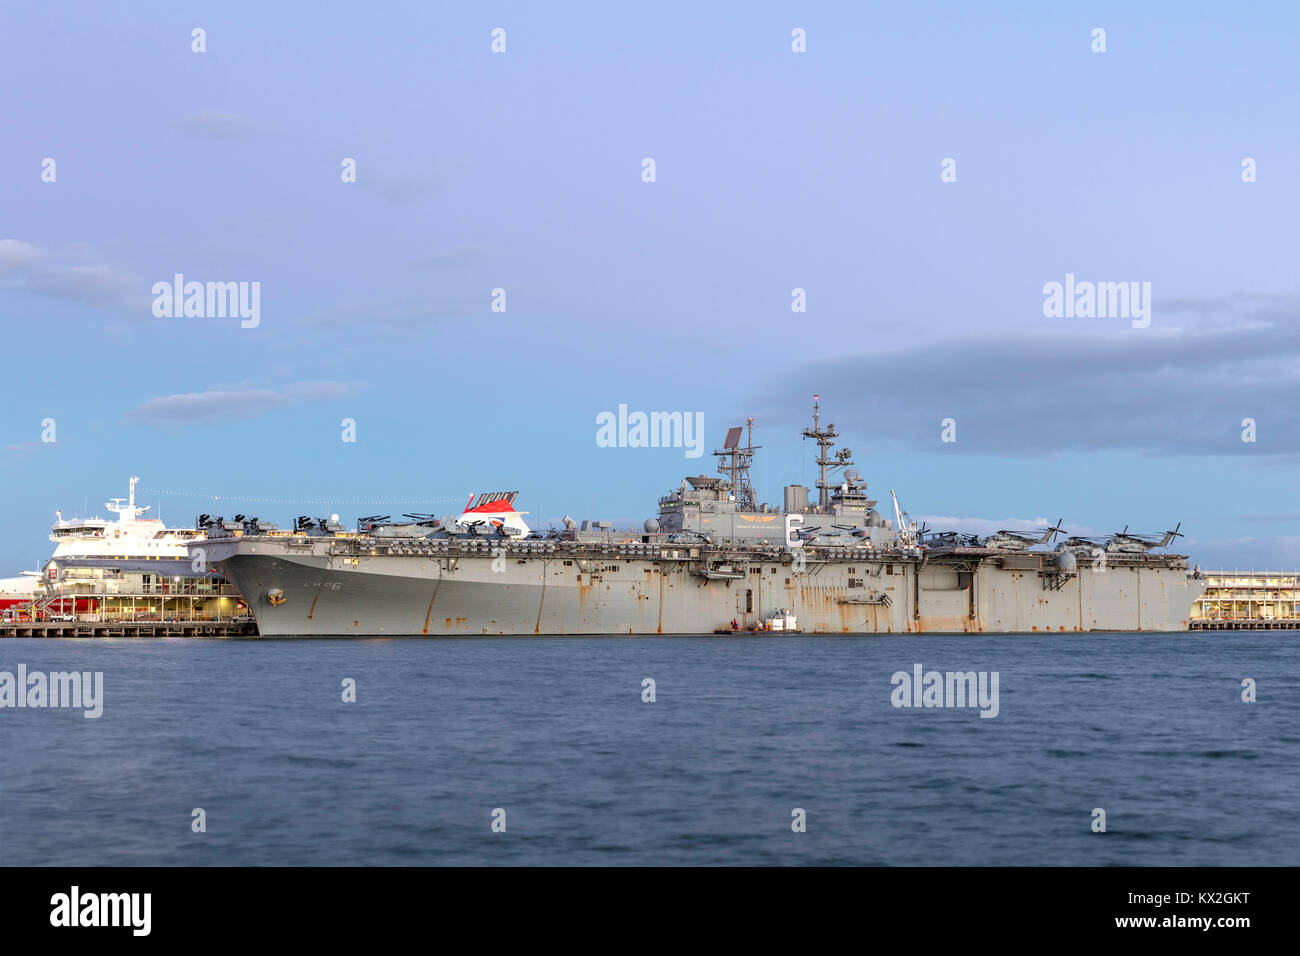 USS Bonhomme Richard (LHD-6) Wasp-class amphibious assault ship of the United States Navy docked at Station Pi Stock Photo